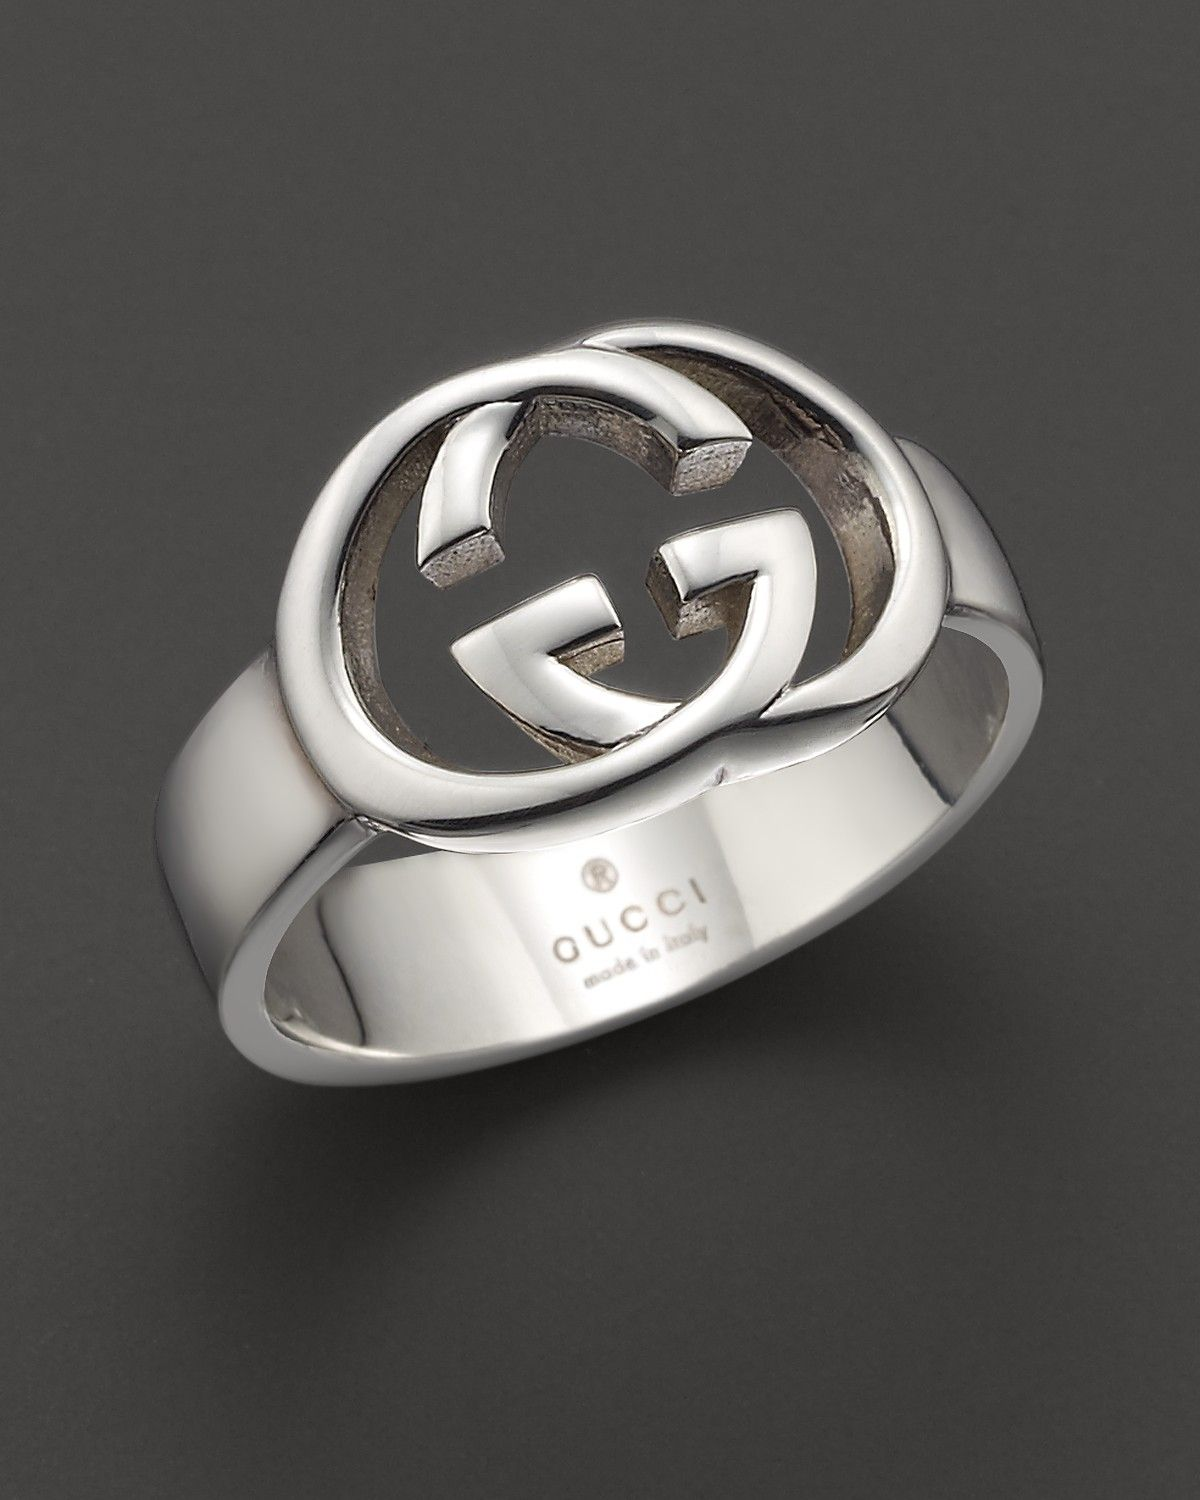 167113f19 Gucci Sterling Silver Britt Ring | Bloomingdale's $200 | Wish List ...